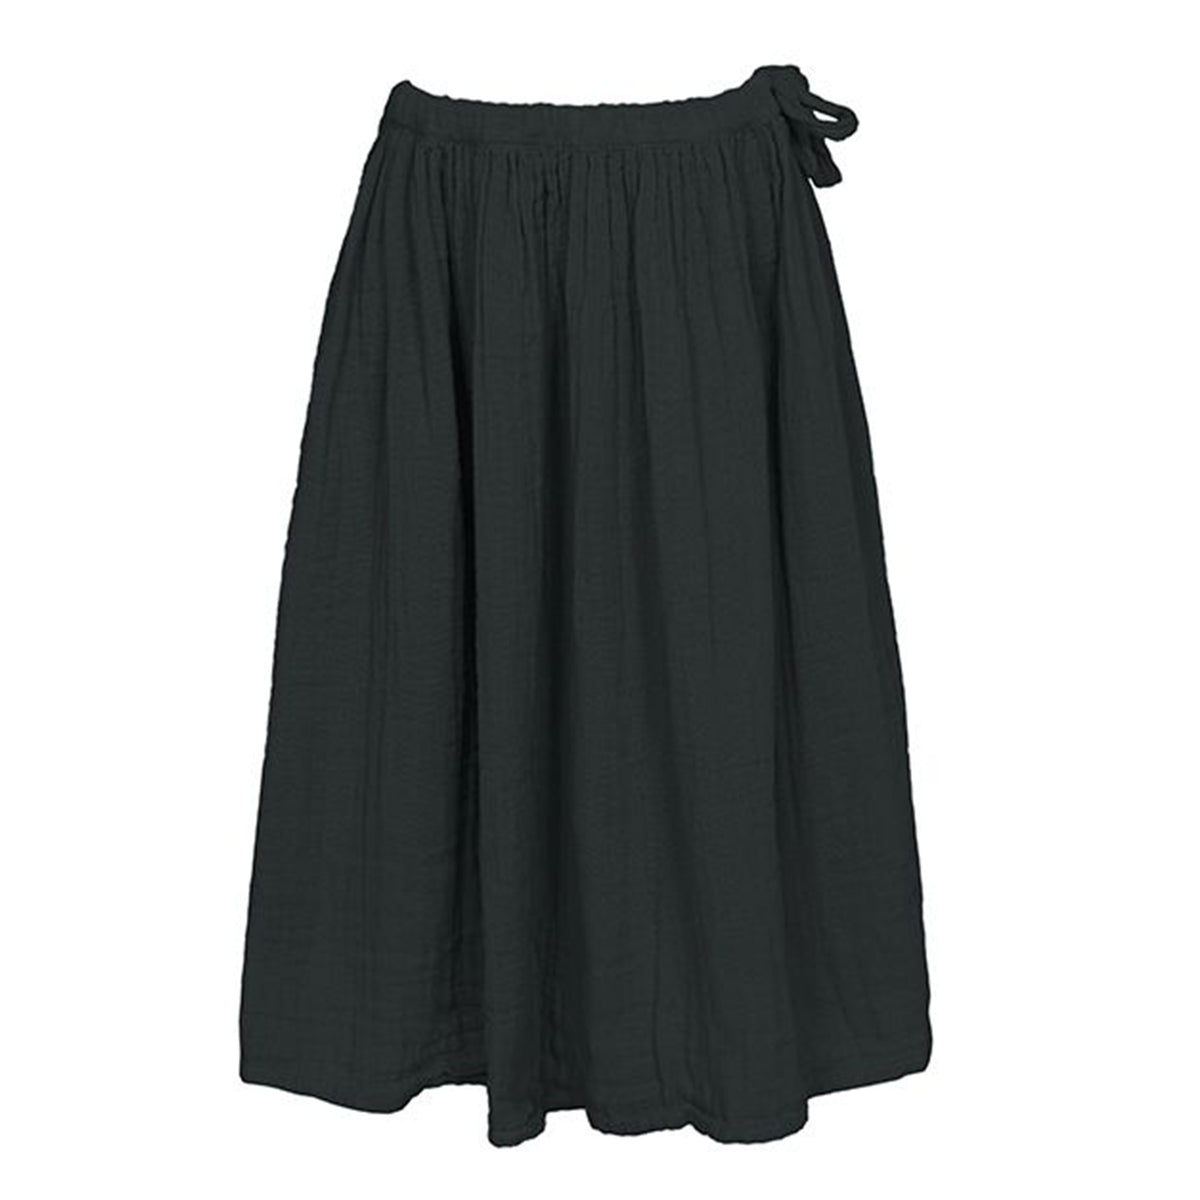 Numero 74 Ava Skirt Dark Grey - Scandi Minimal